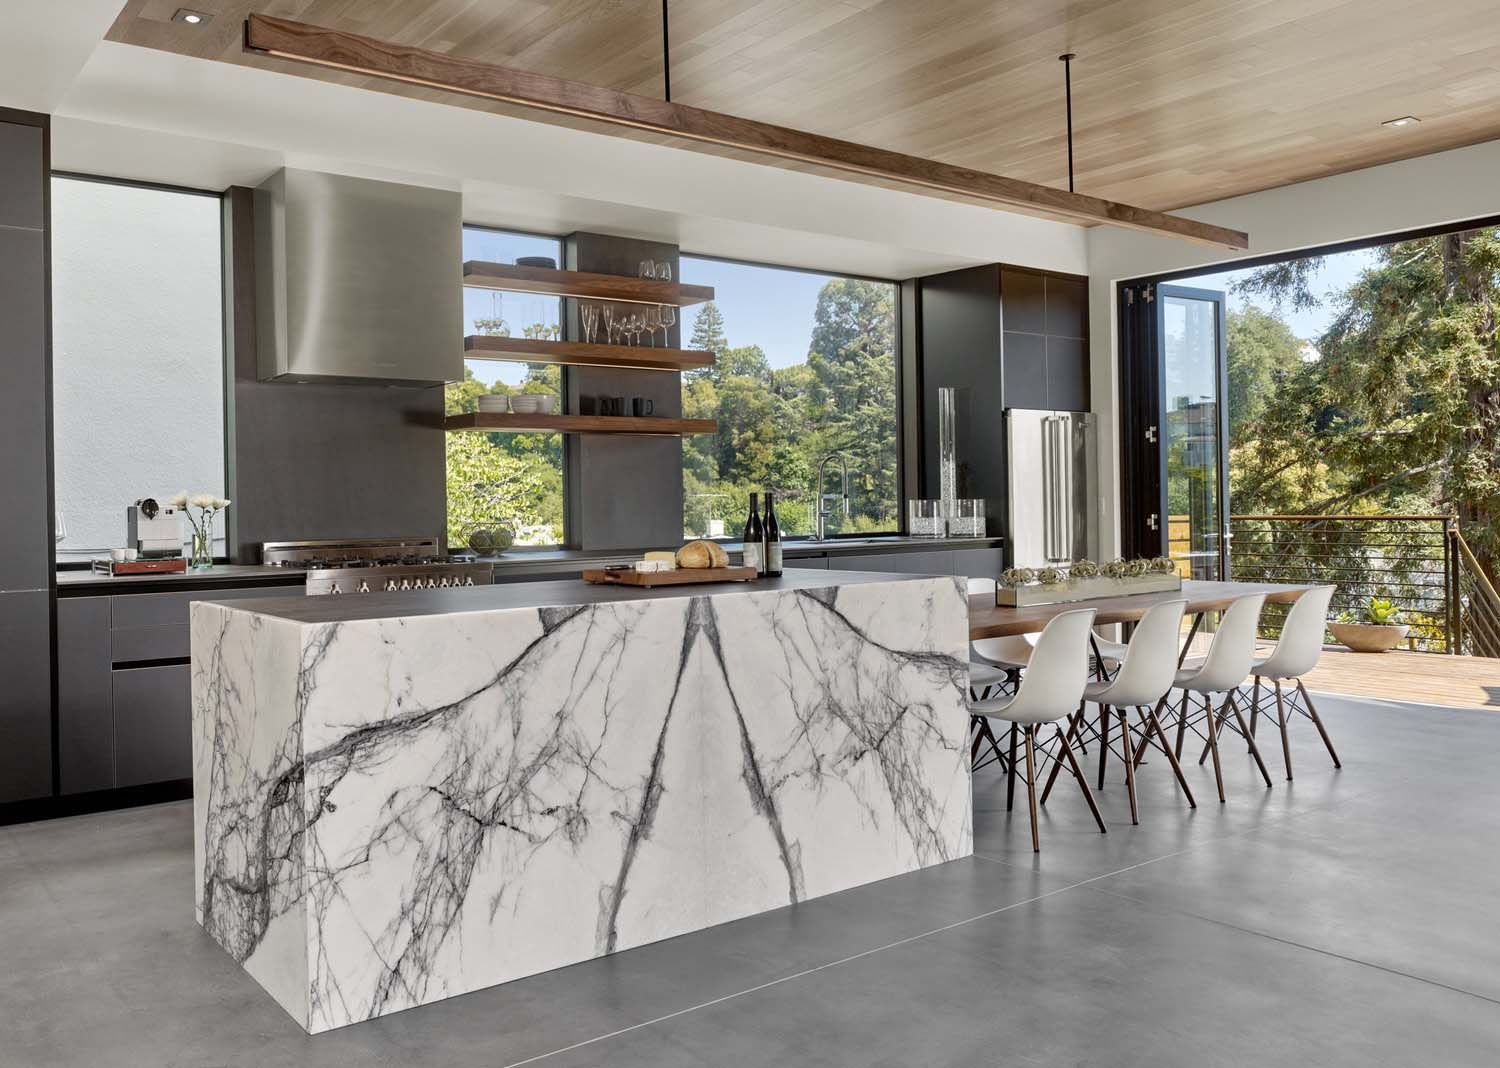 Midcentury Inspired Home With A Modern Twist On The West Coast Modern Kitchen Design Small Modern Kitchens Best Kitchen Designs